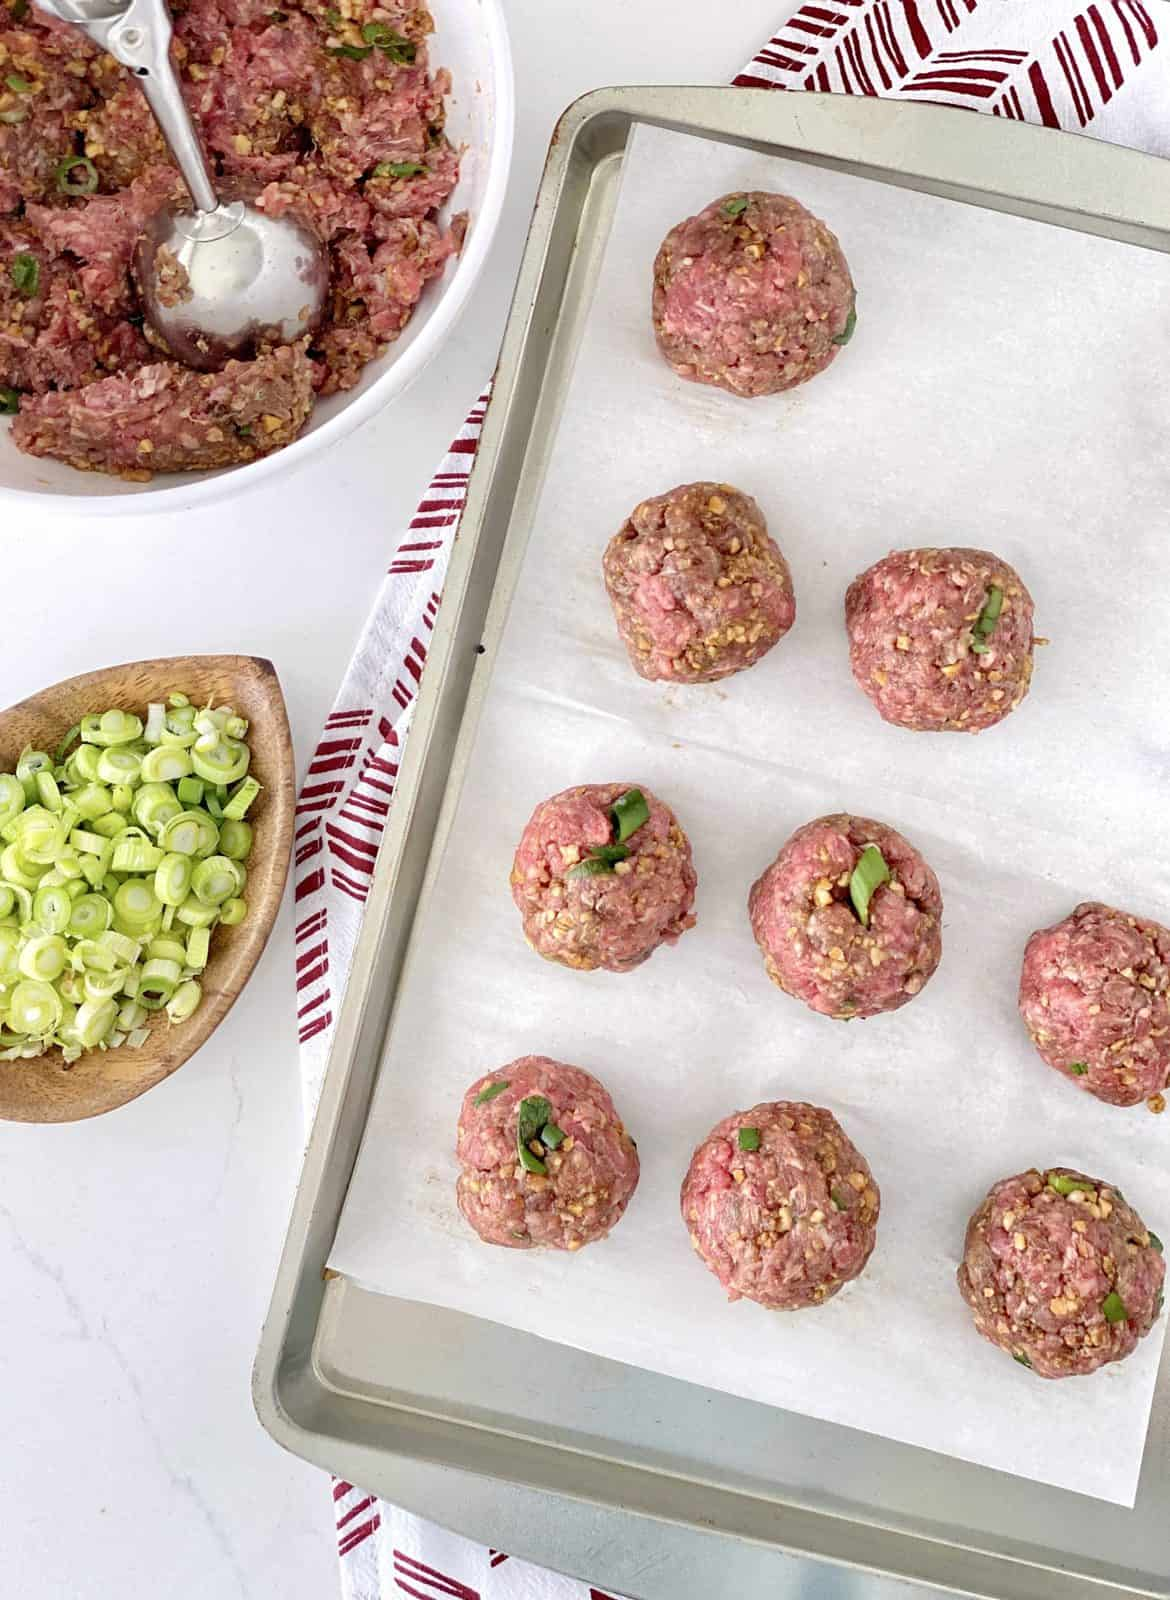 raw meatballs on parchment paper on top of a baking sheet